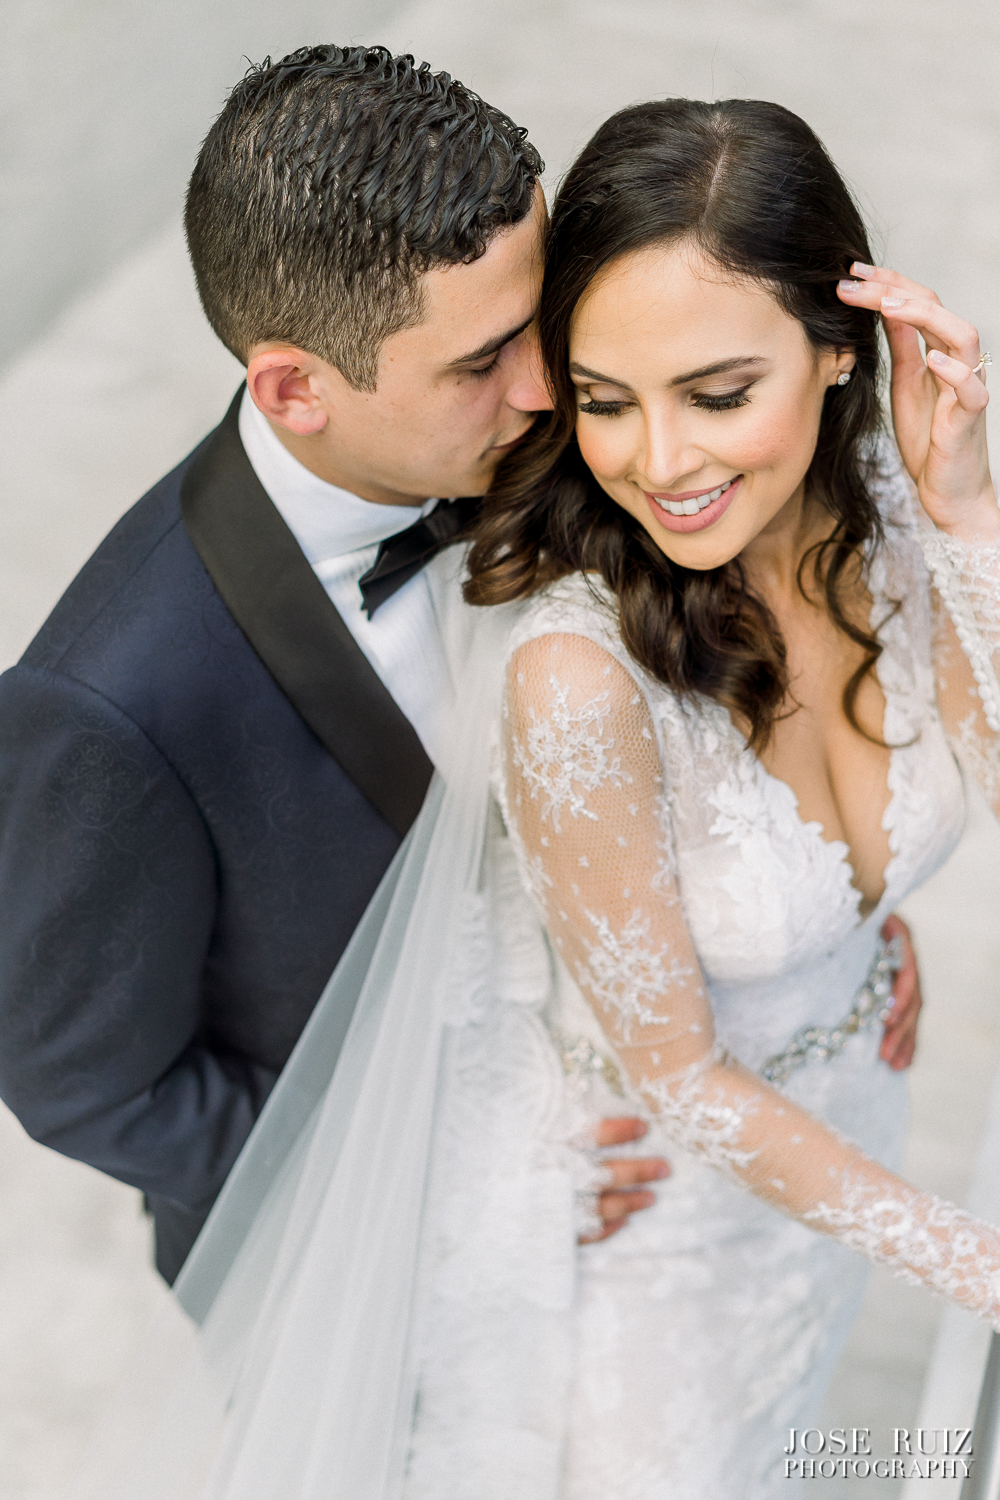 Jose Ruiz Photography- Veronica & Ivan-0106.jpg